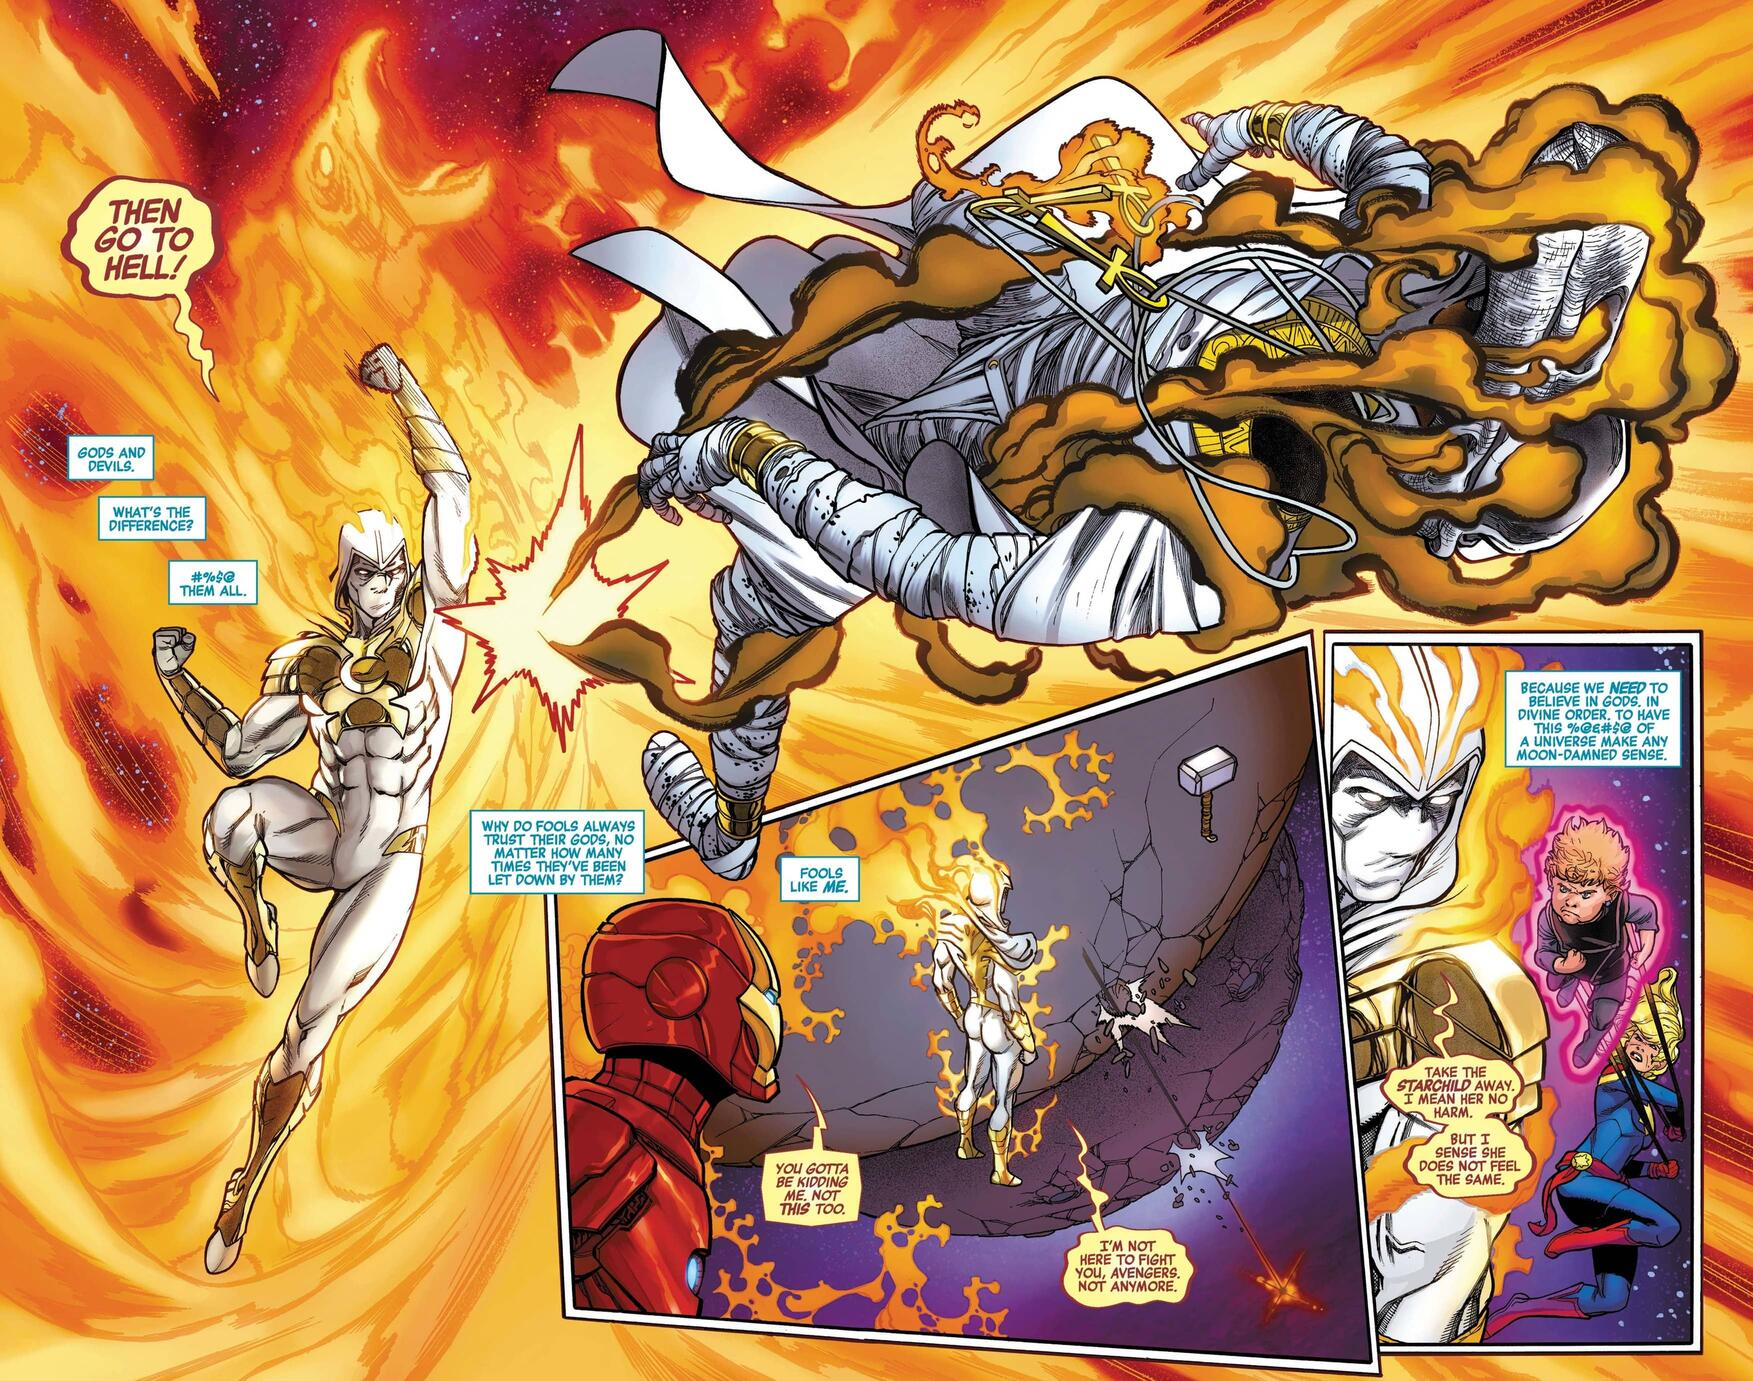 Moon Knight punches Khonshu with the power of the Phoenix.